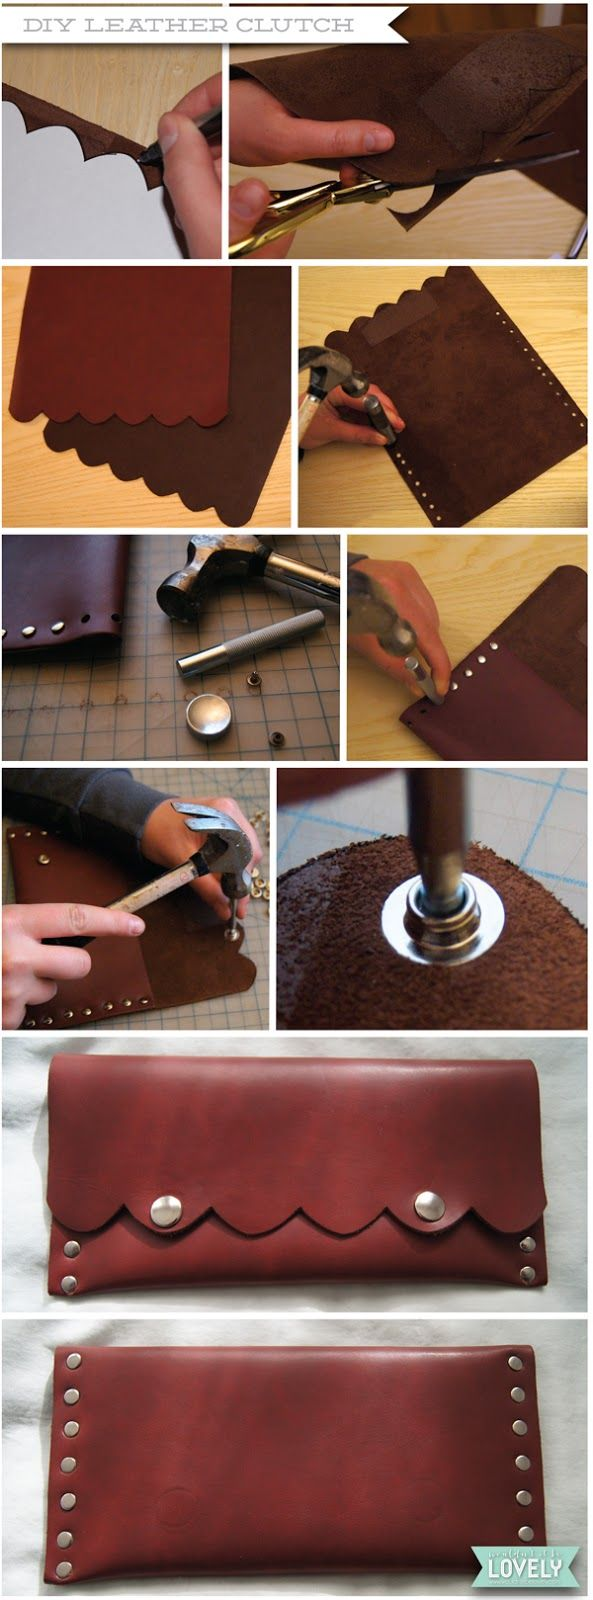 Wouldn't it be Lovely: DIY: Scalloped Leather Clutch